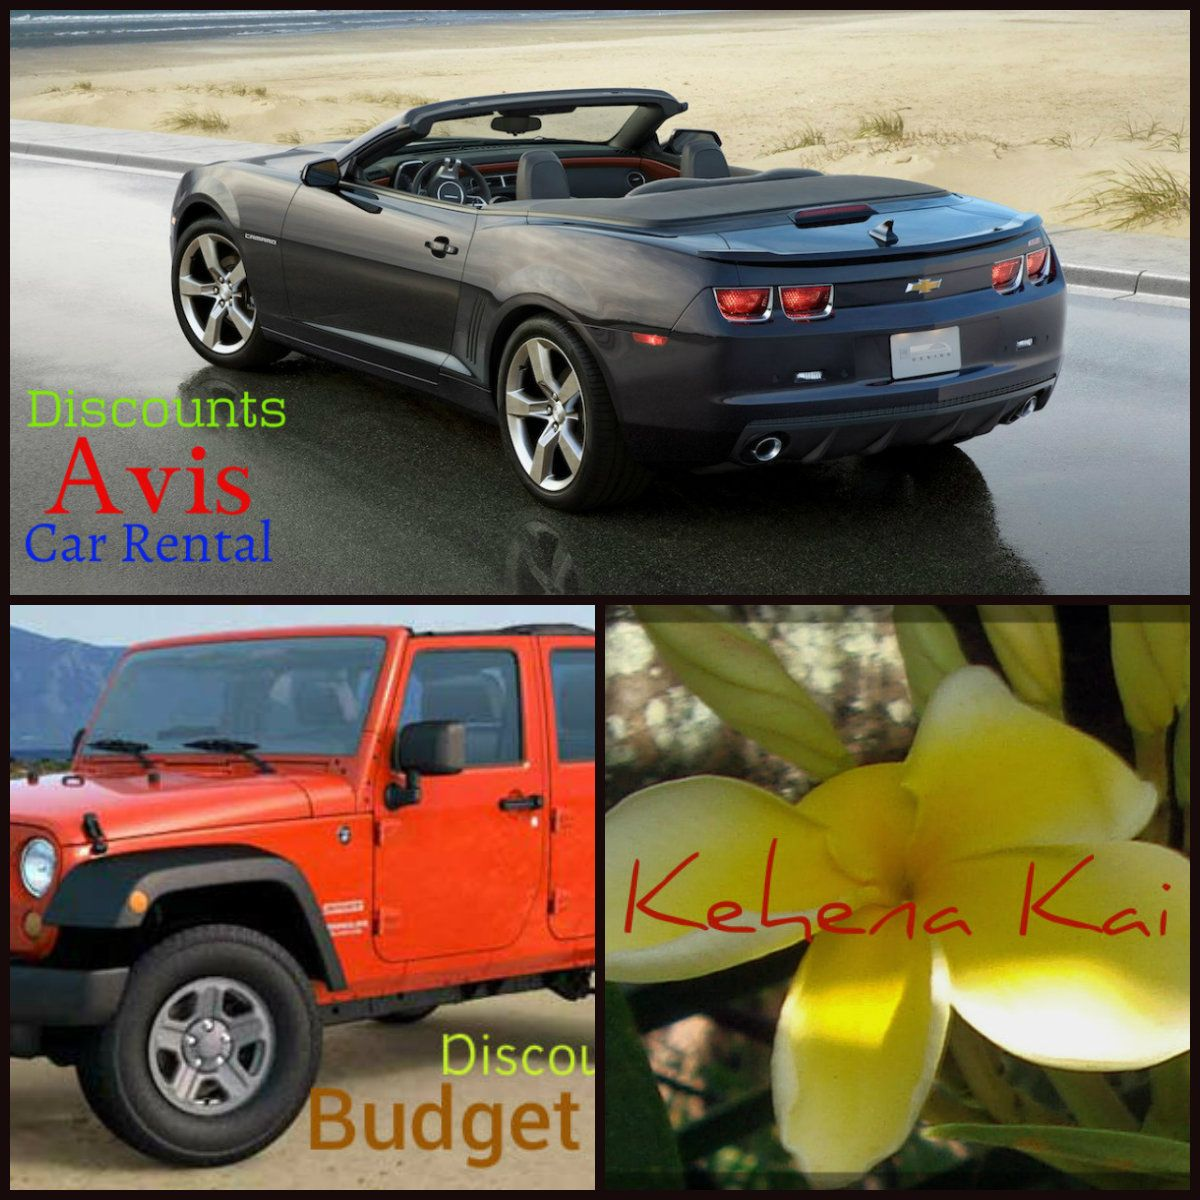 Convertible Or Jeep Save On Car Rental While In Hawaii Avis Budget With Kehena K Enterprise Car Rental Rental Car Discounts Enterprise Car Rental Coupons